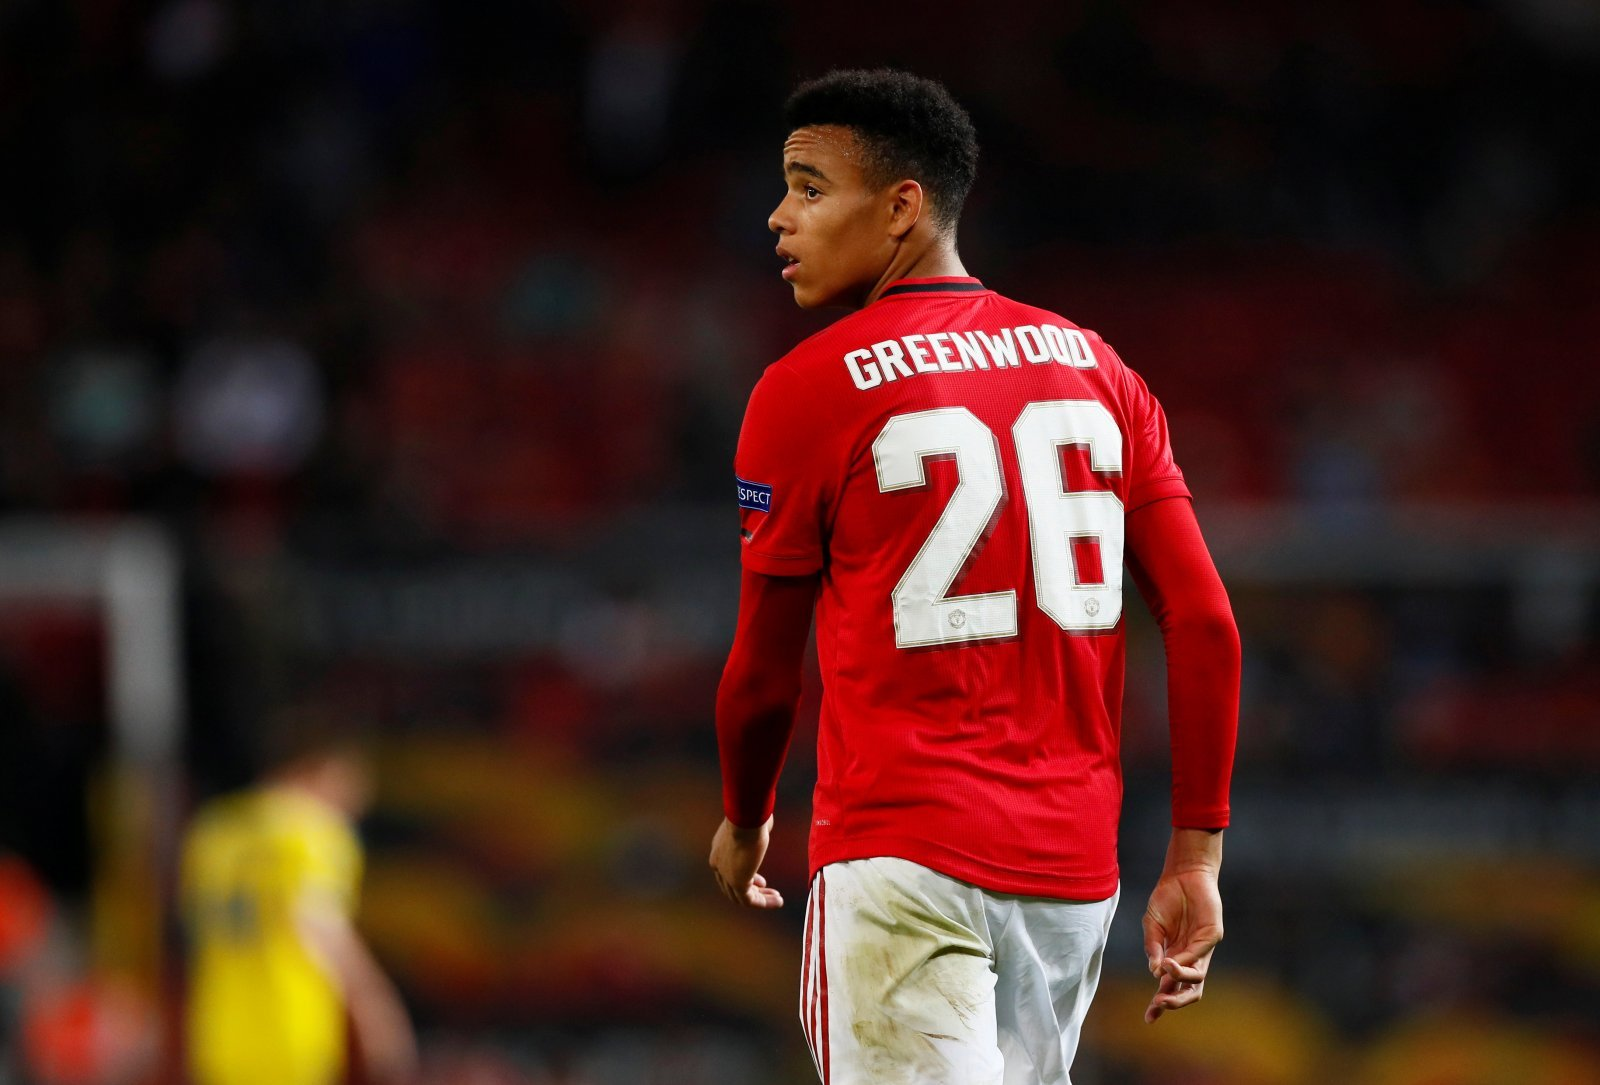 Manchester United: Fans compare Mason Greenwood to former star Robin van Persie